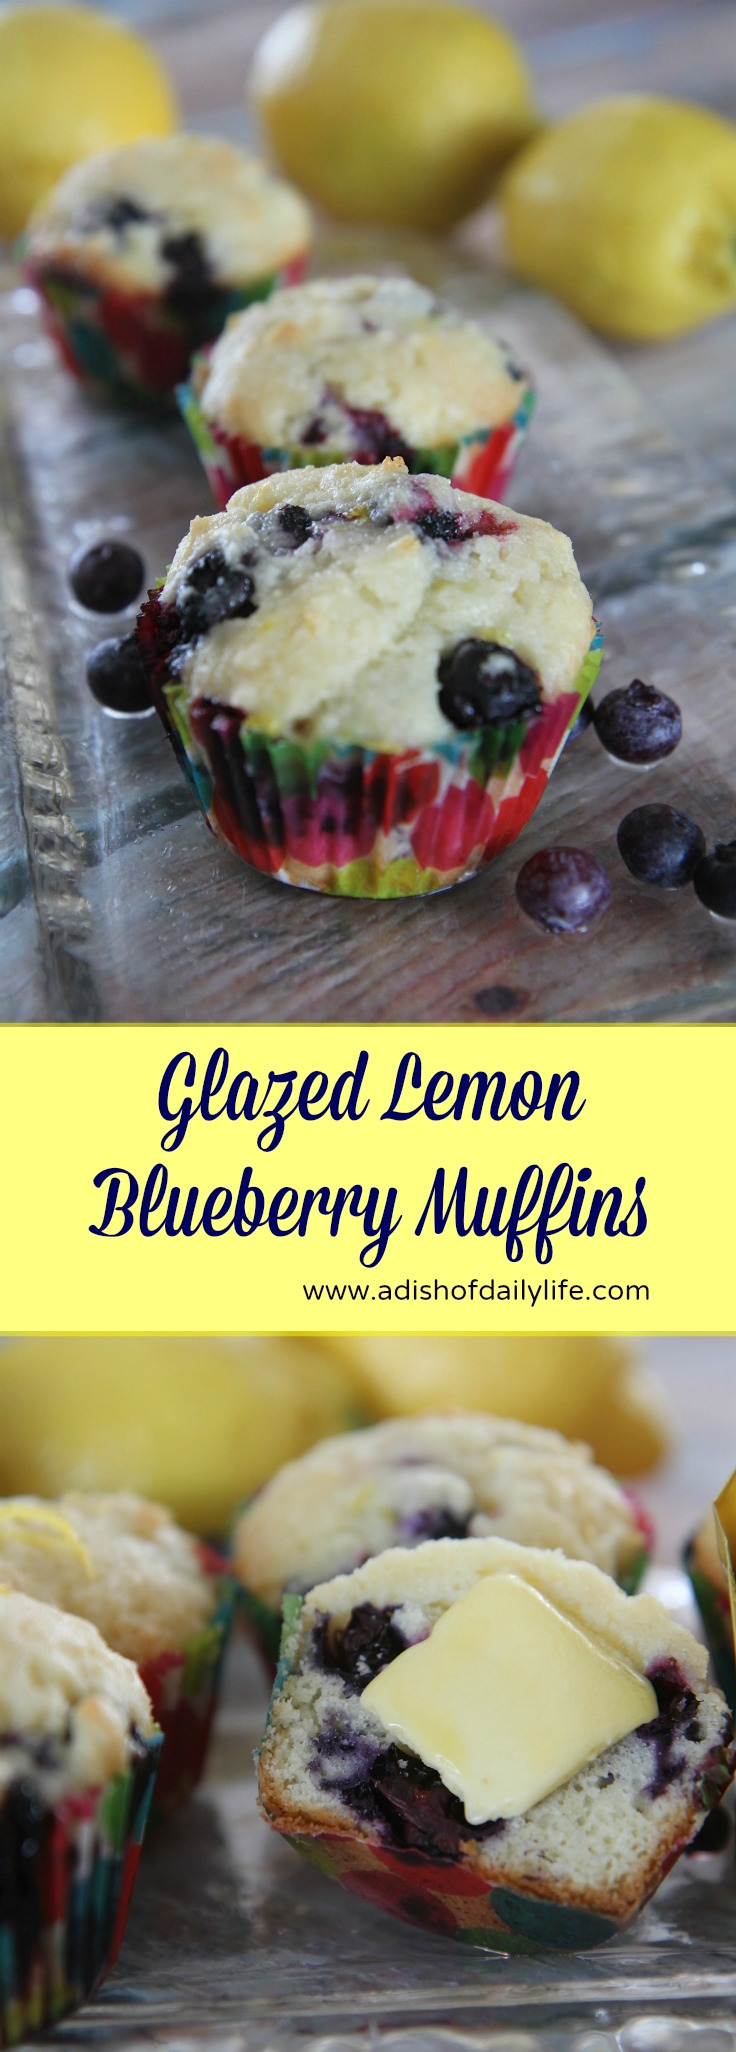 These glazed lemon blueberry muffins, made with a premium imported butter, are melt in your mouth good...perfect for breakfast or a pick-me-up snack any time of day #ButterMeUp